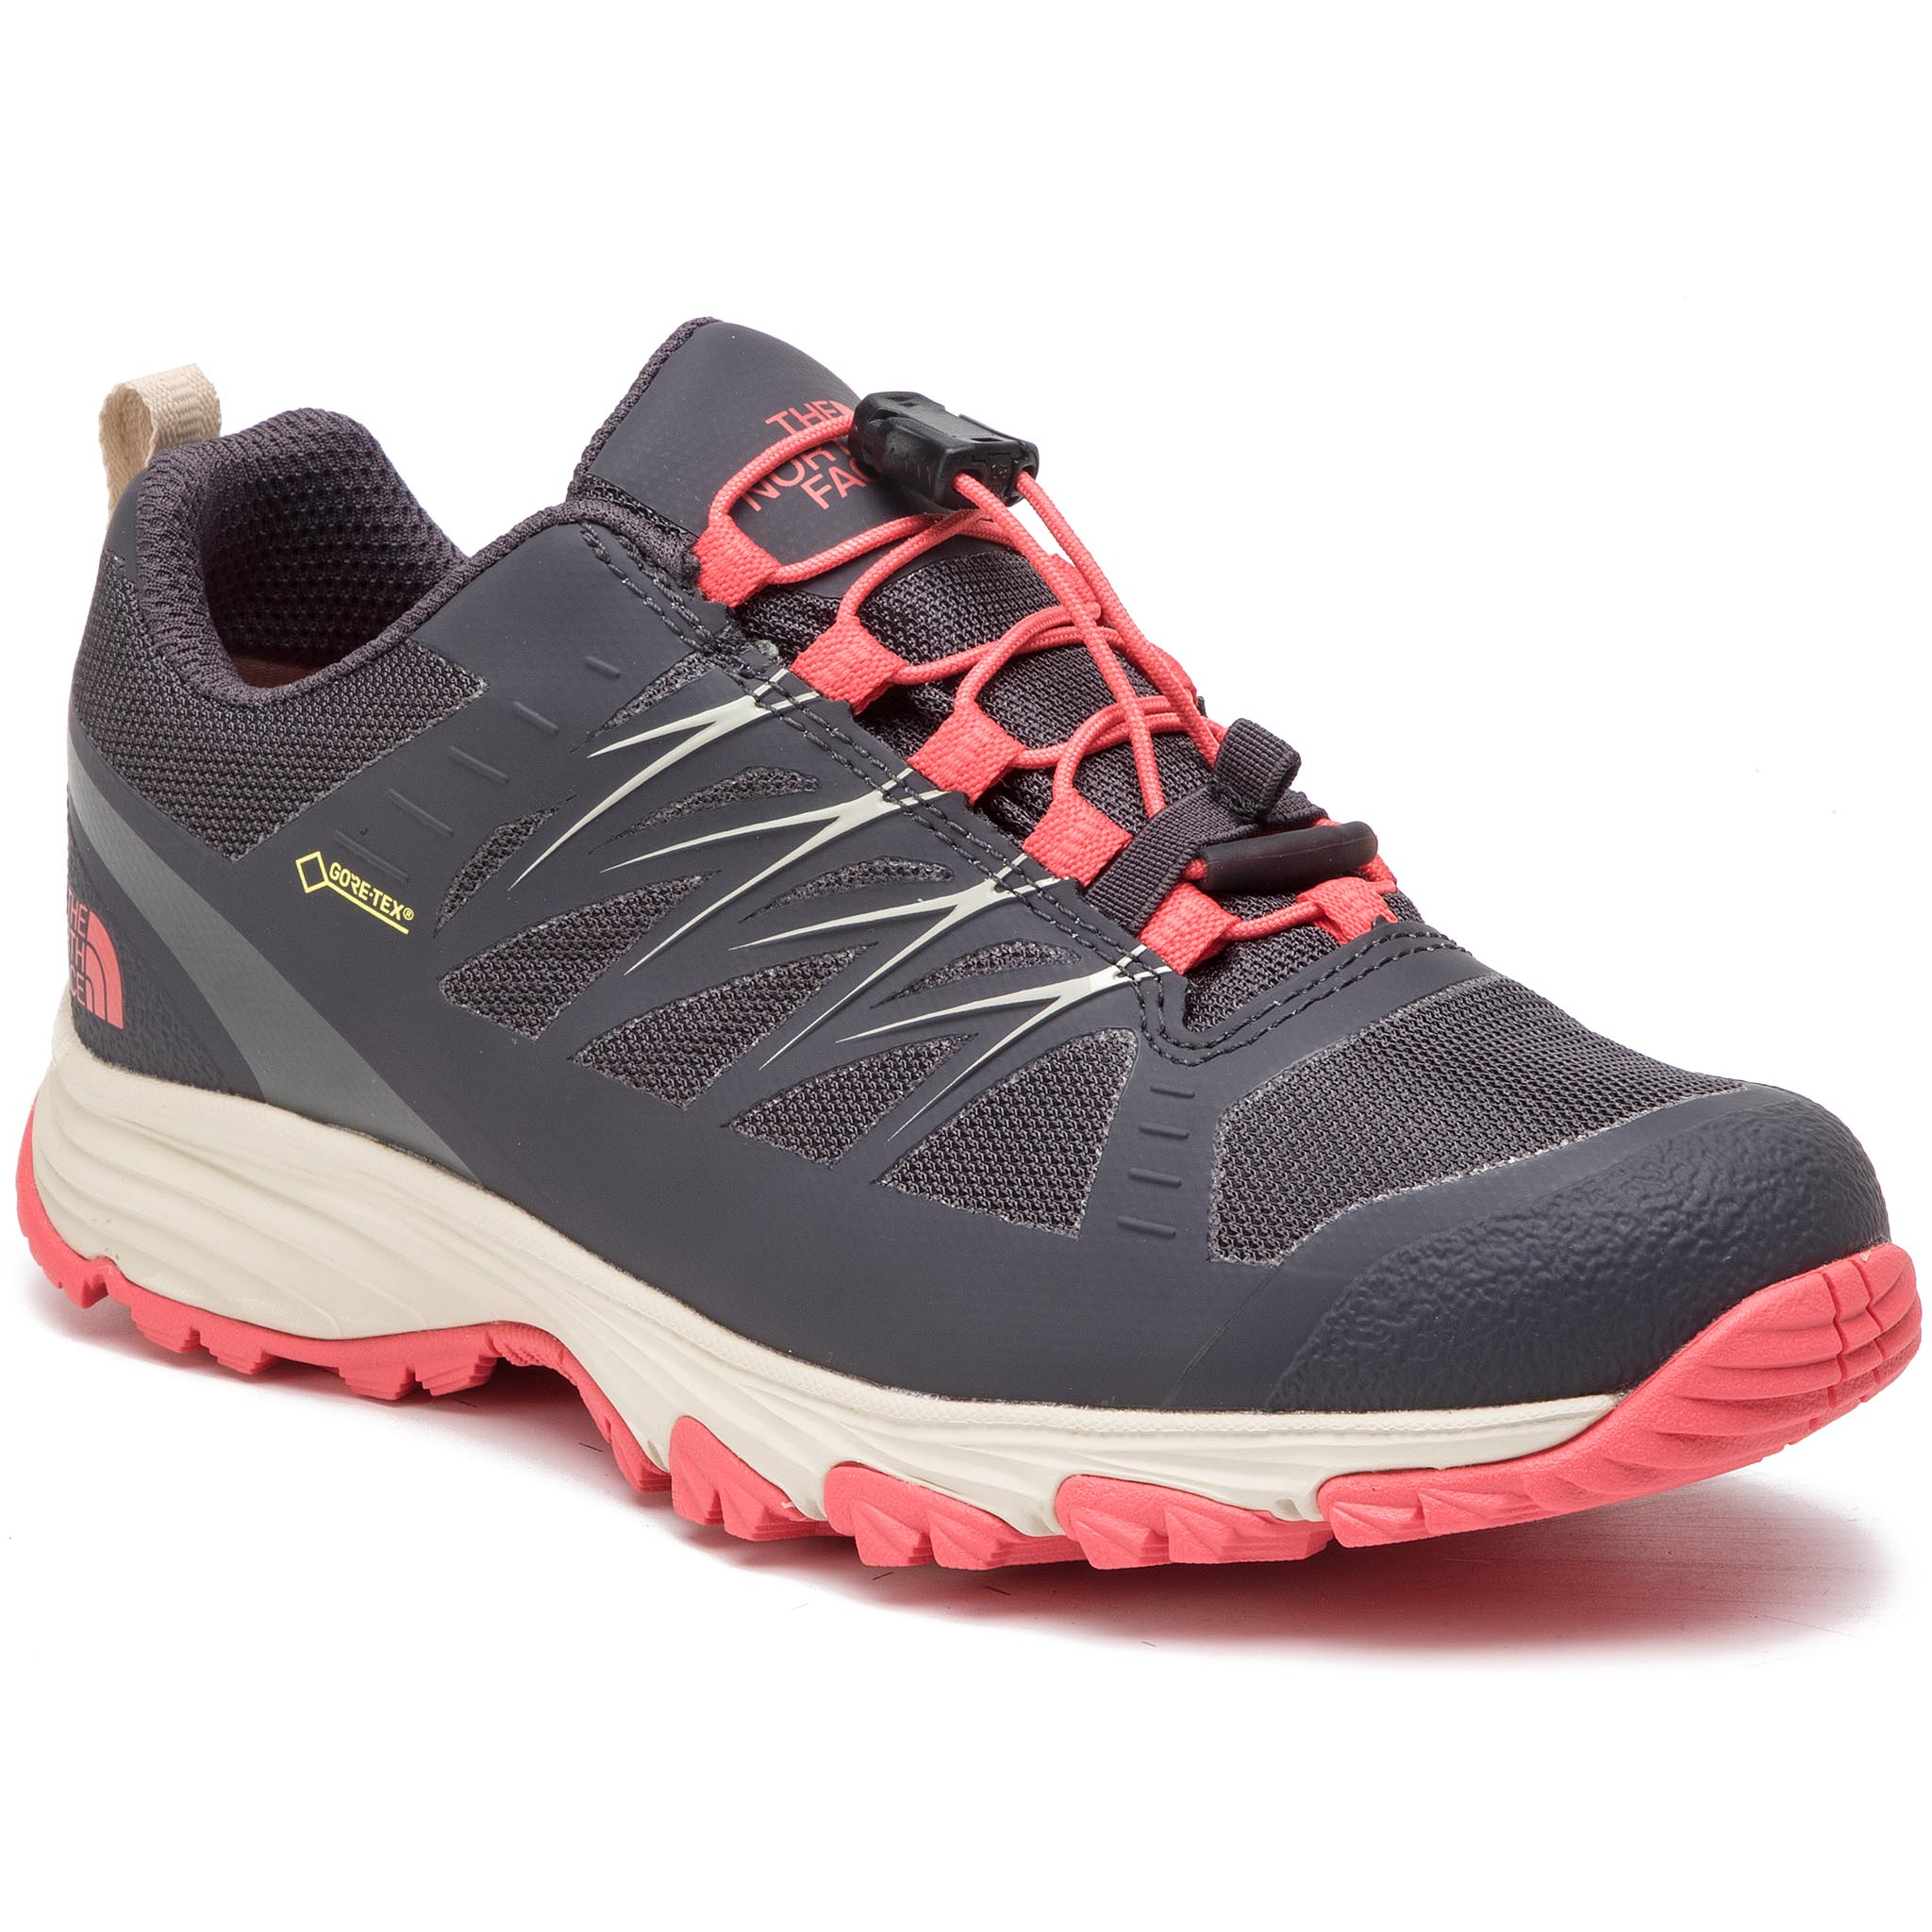 Pantofi THE NORTH FACE - Venture Fastlace GORE-TEX NF0A3FYZDC0 Blackened Pearl/Fiesta Red